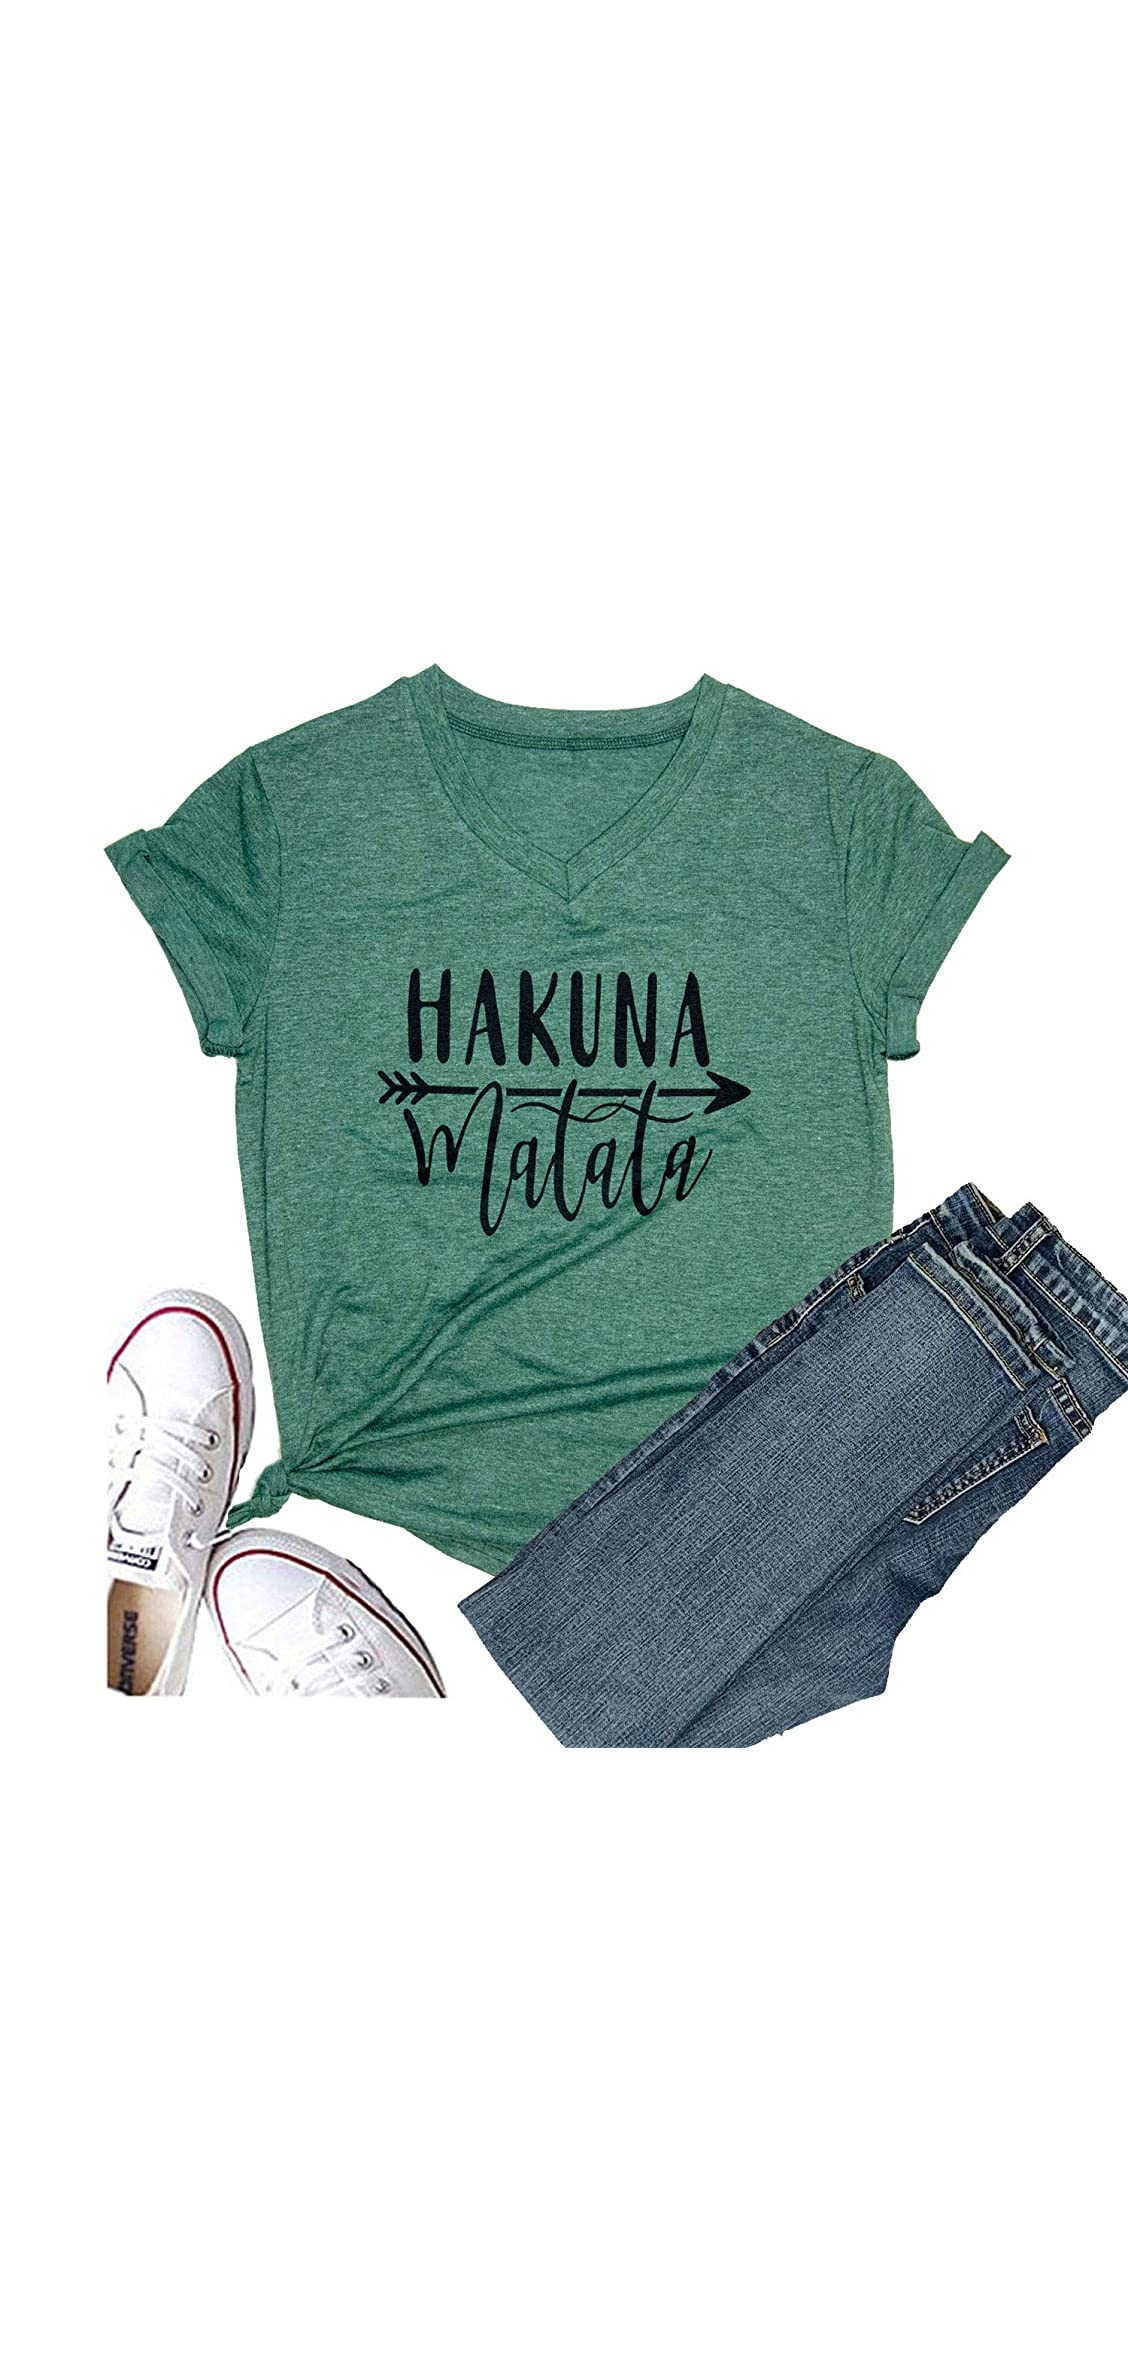 Women's Hakuna Matata Shirt Short Sleeve Graphic Tees Funny Love